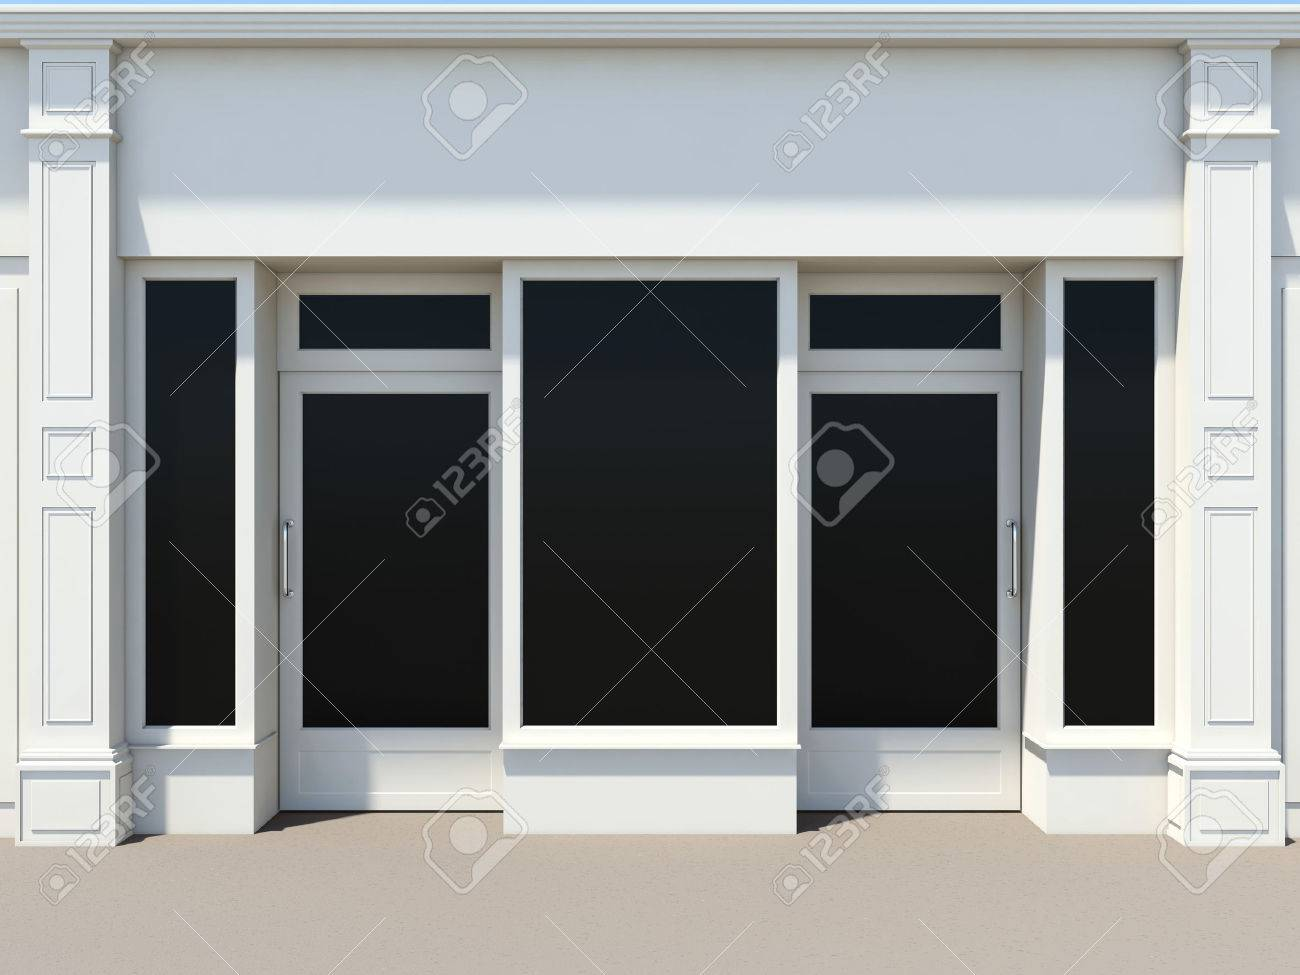 Shopfront with two doors and large windows. White store facade. Stock Photo - 32523234 & Shopfront With Two Doors And Large Windows. White Store Facade ...